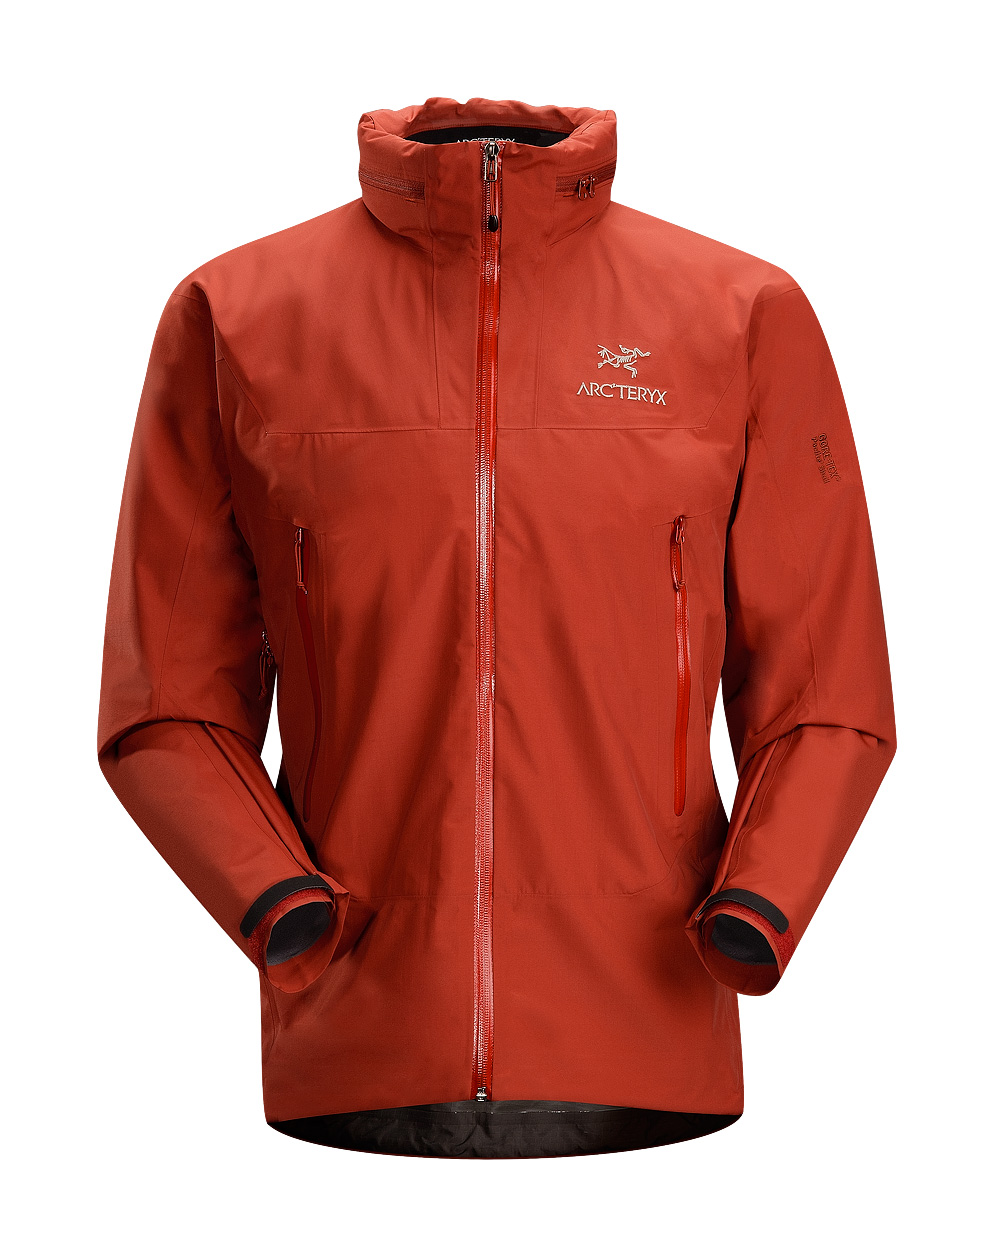 Arcteryx Jackets Men Rooibos Theta SL Hybrid Jacket - New